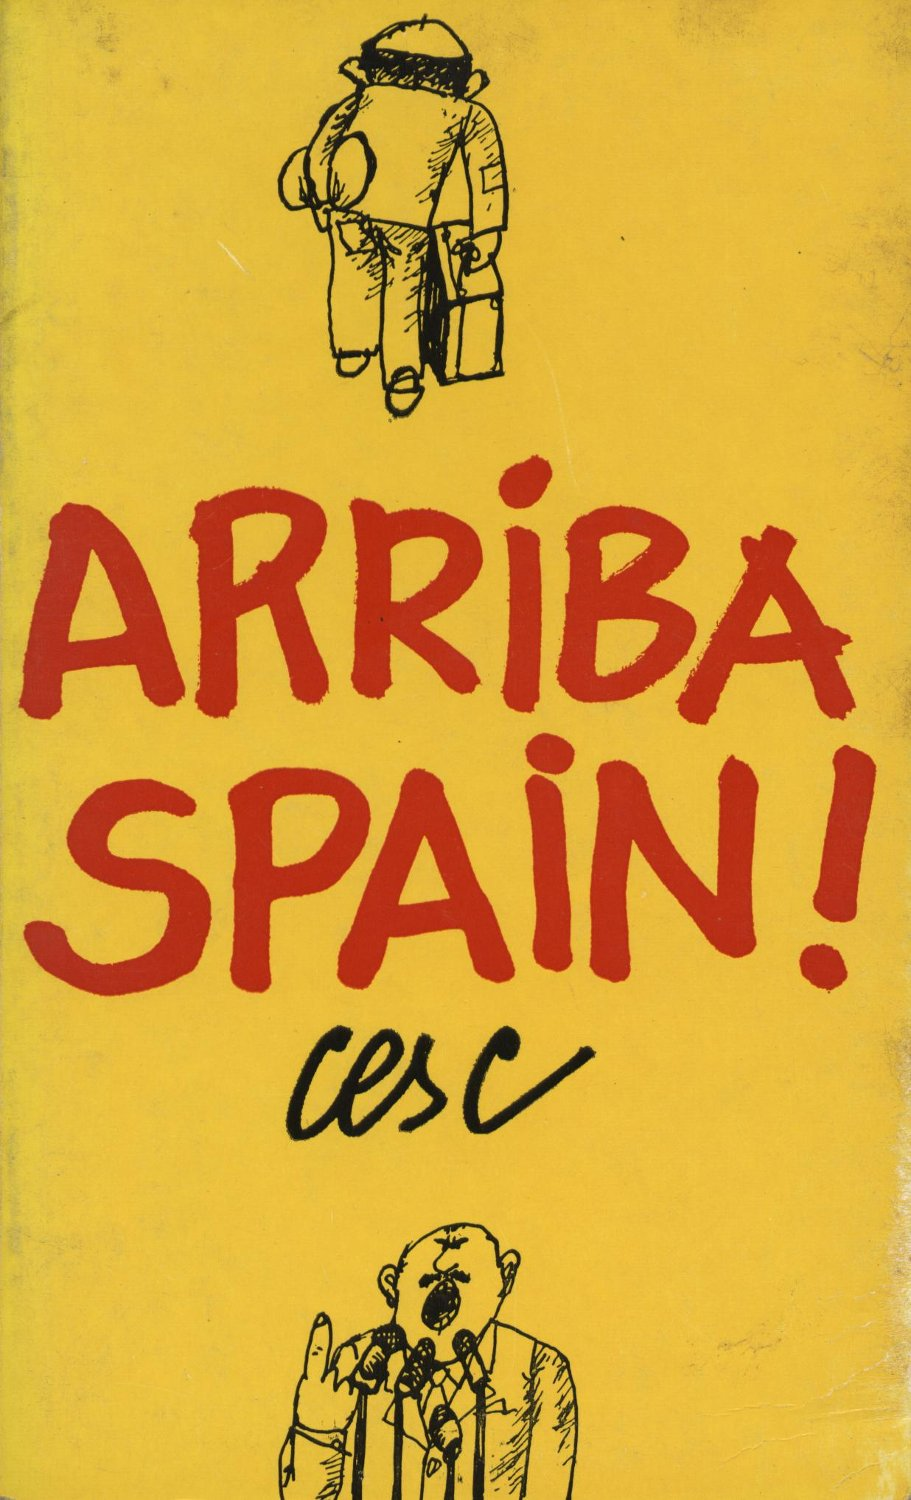 Arriba spain - Cesc a bratac.cat